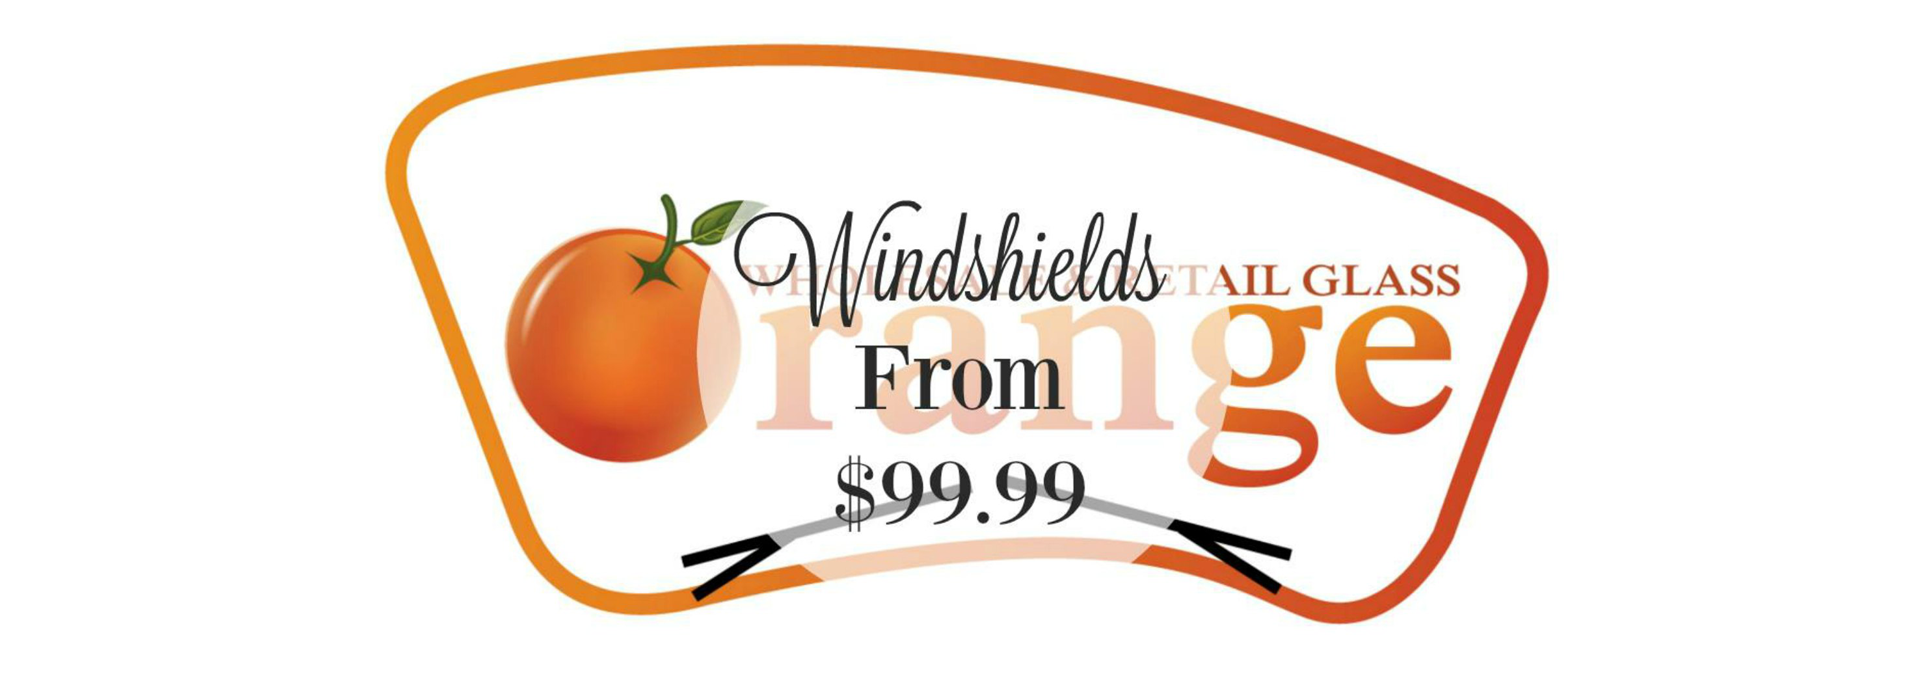 windshields from $99.99